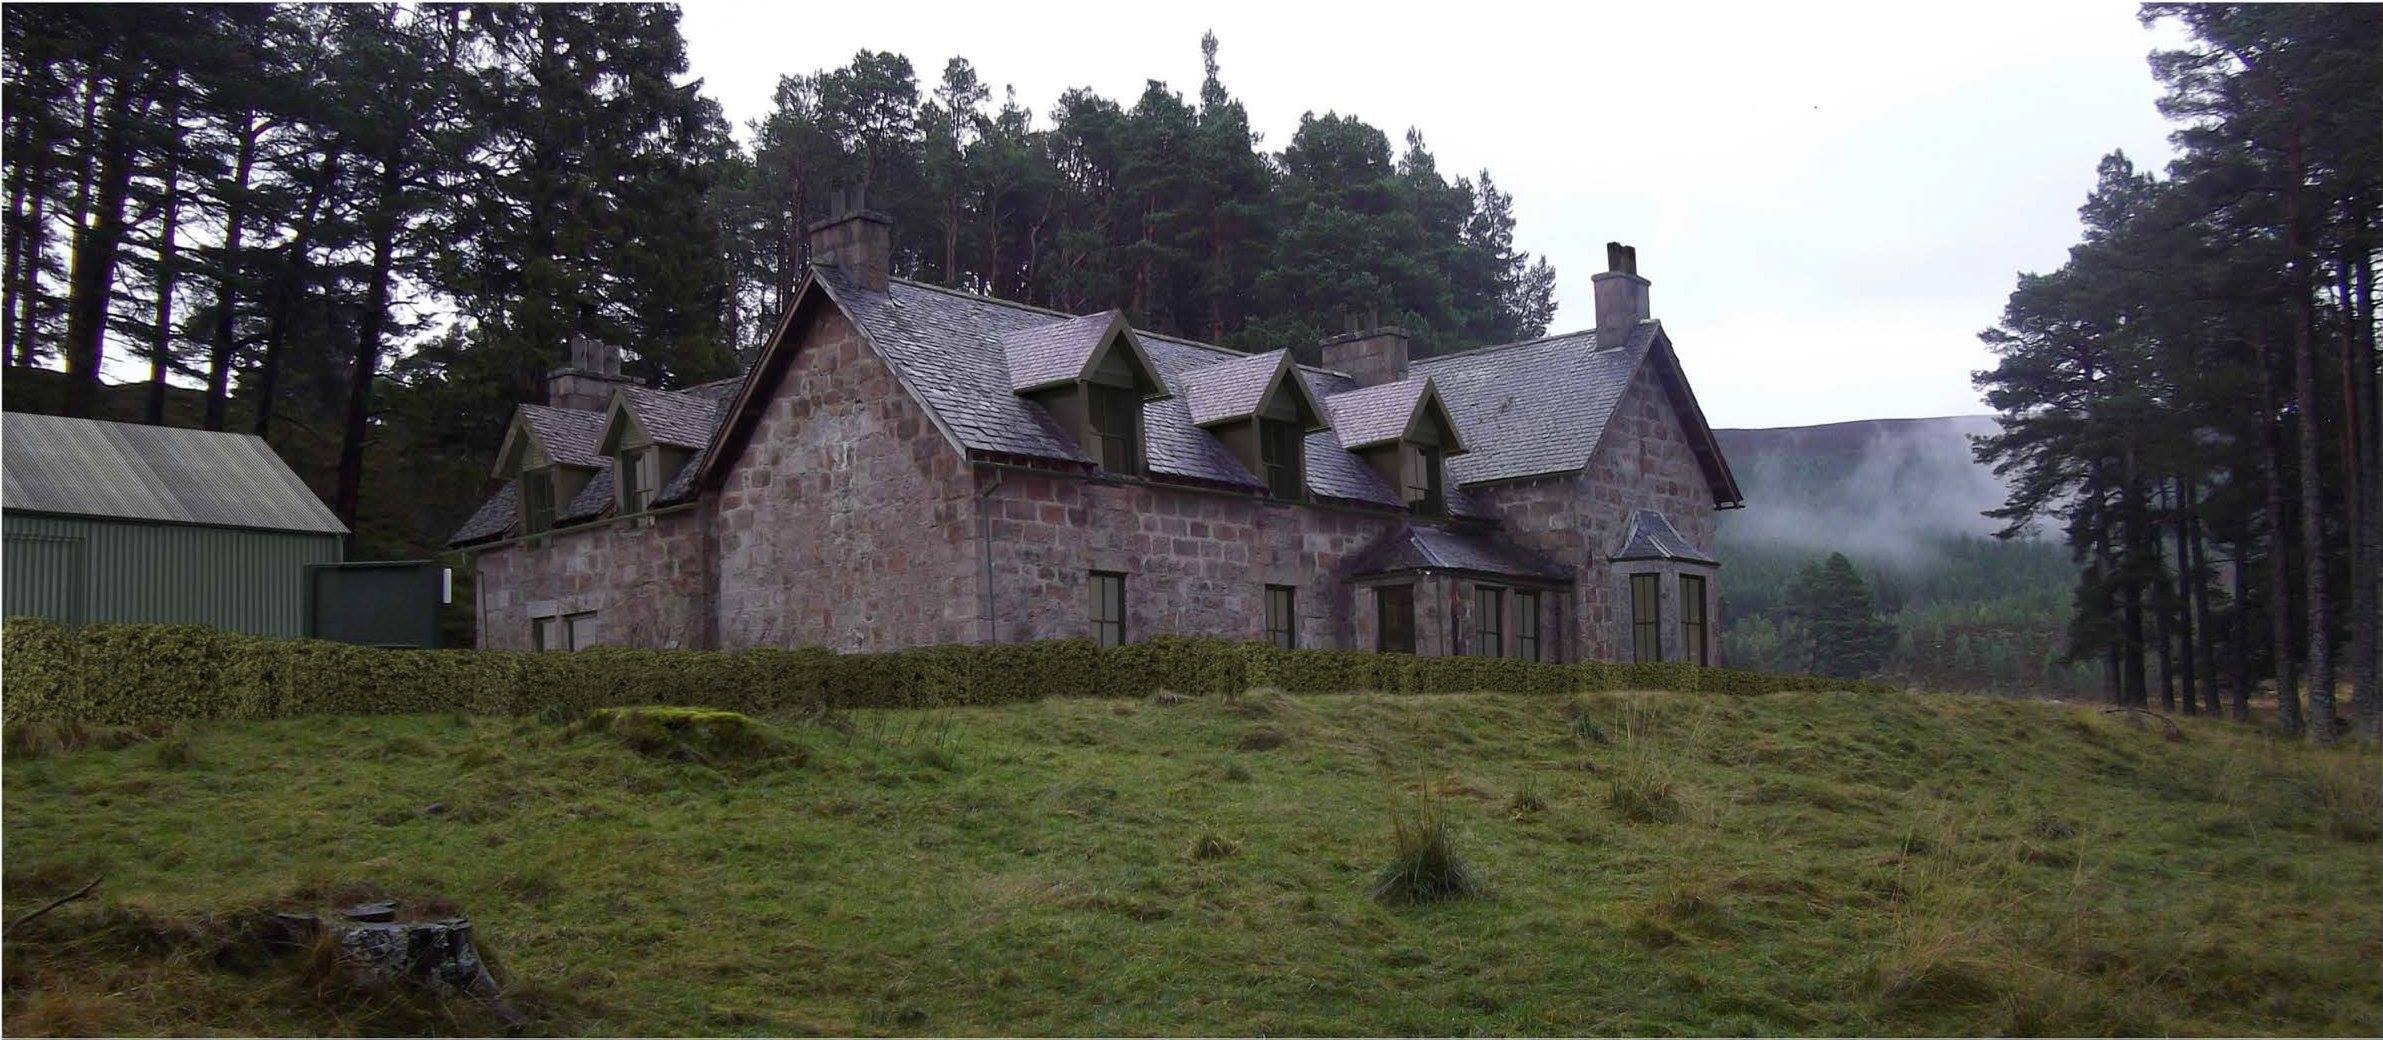 Derry Lodge as it is now